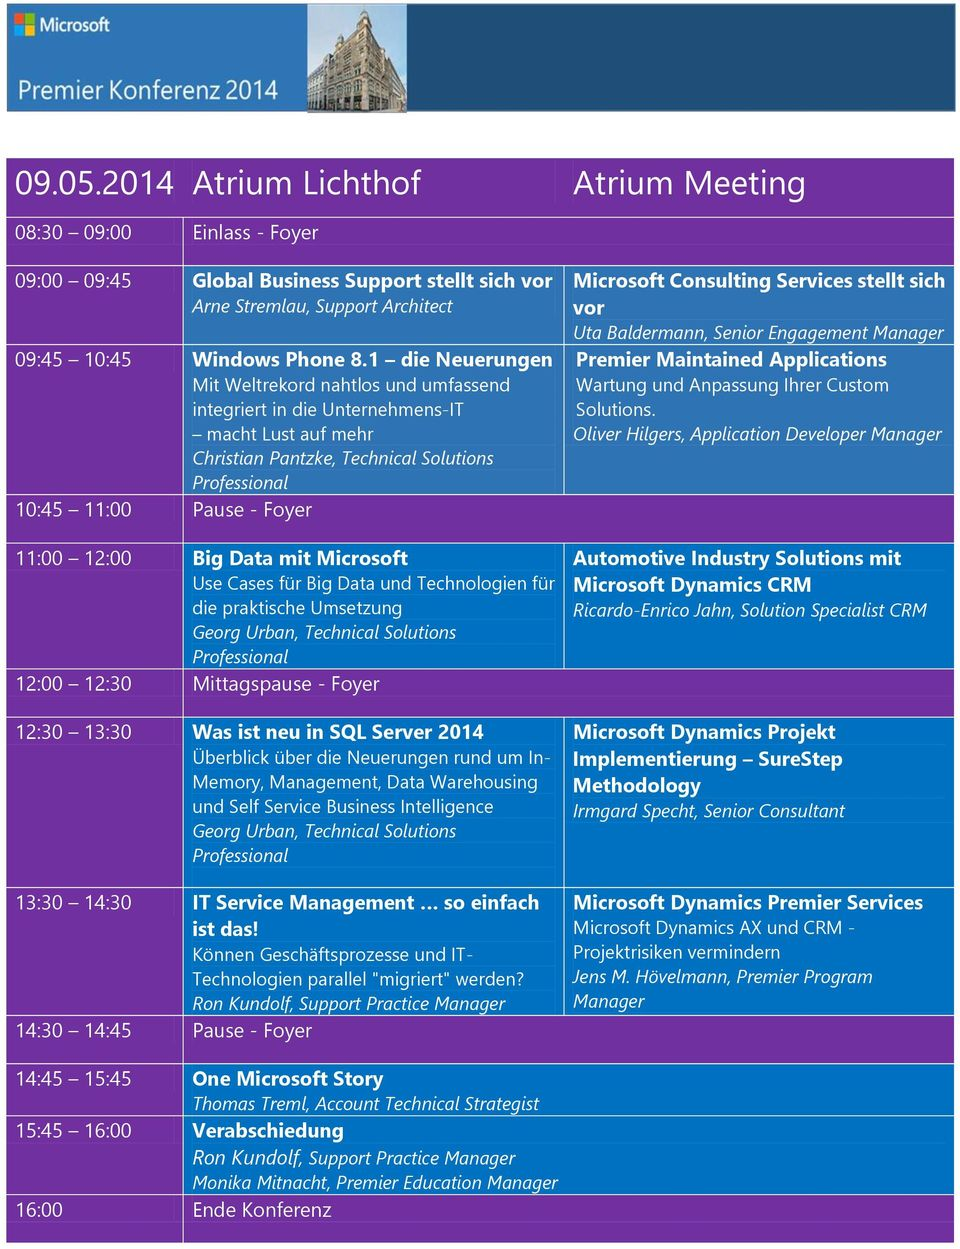 Use Cases für Big Data und Technologien für die praktische Umsetzung Georg Urban, Technical Solutions 12:00 12:30 Mittagspause - Foyer 12:30 13:30 Was ist neu in SQL Server 2014 Überblick über die